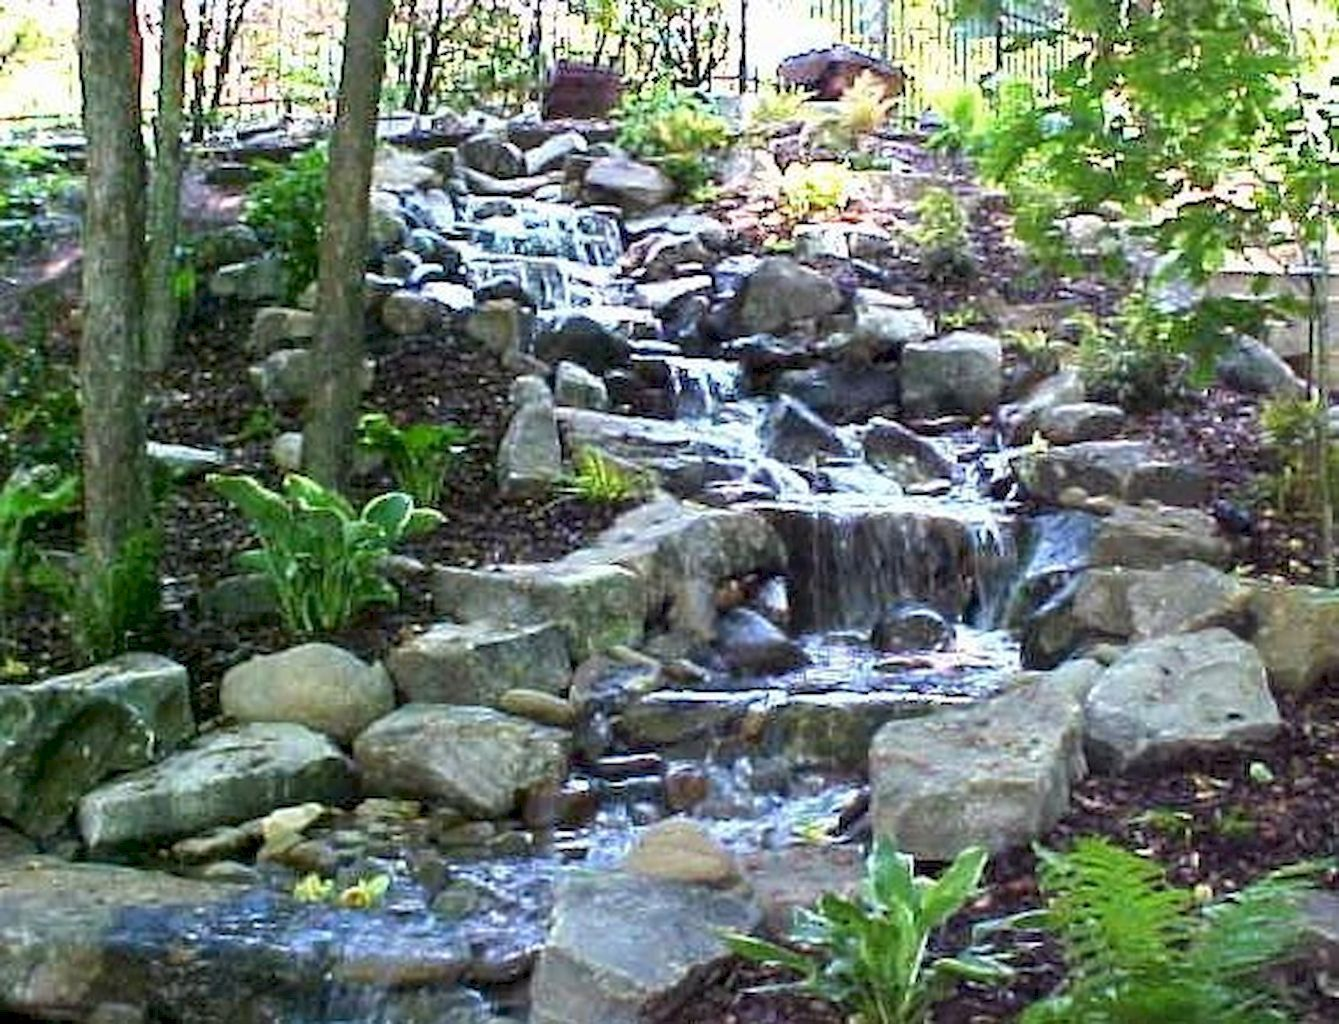 Pondless Backyard Waterfall Garden Ideas 8 Waterfalls Backyard Ponds Backyard Backyard Garden Landscape